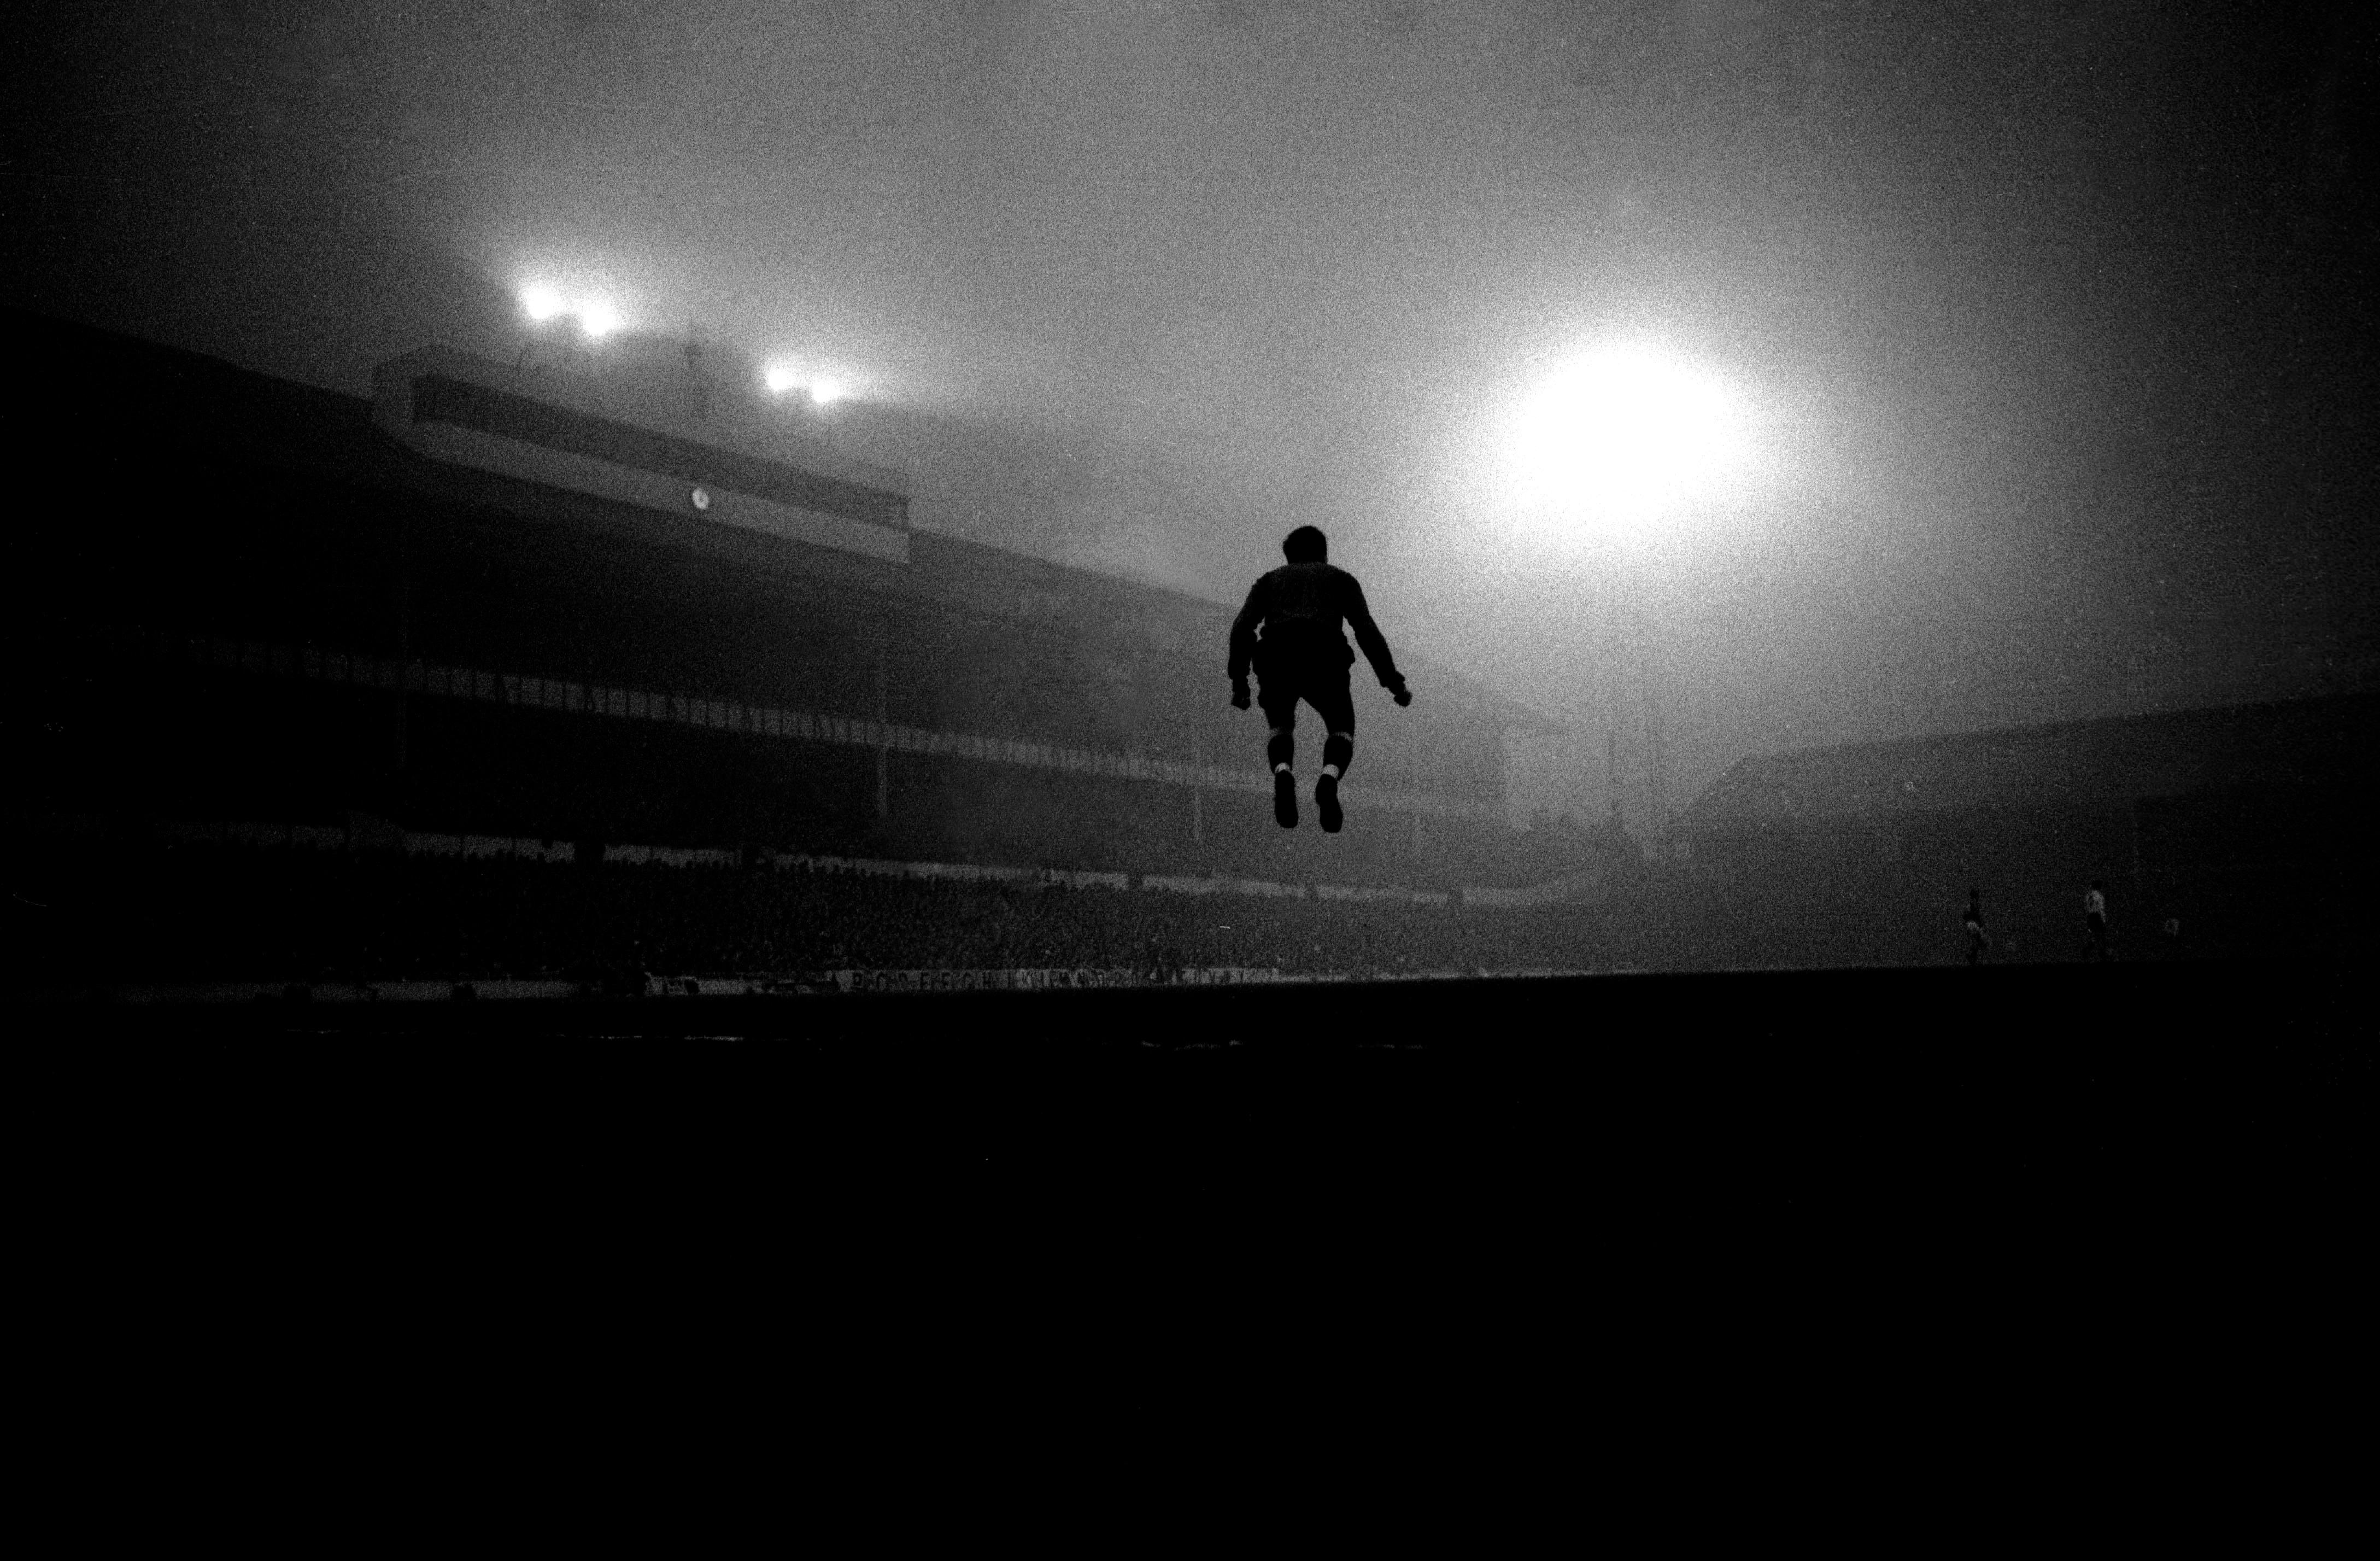 Buy a classic sport photograph: jumping in the fog at White Hart Lane